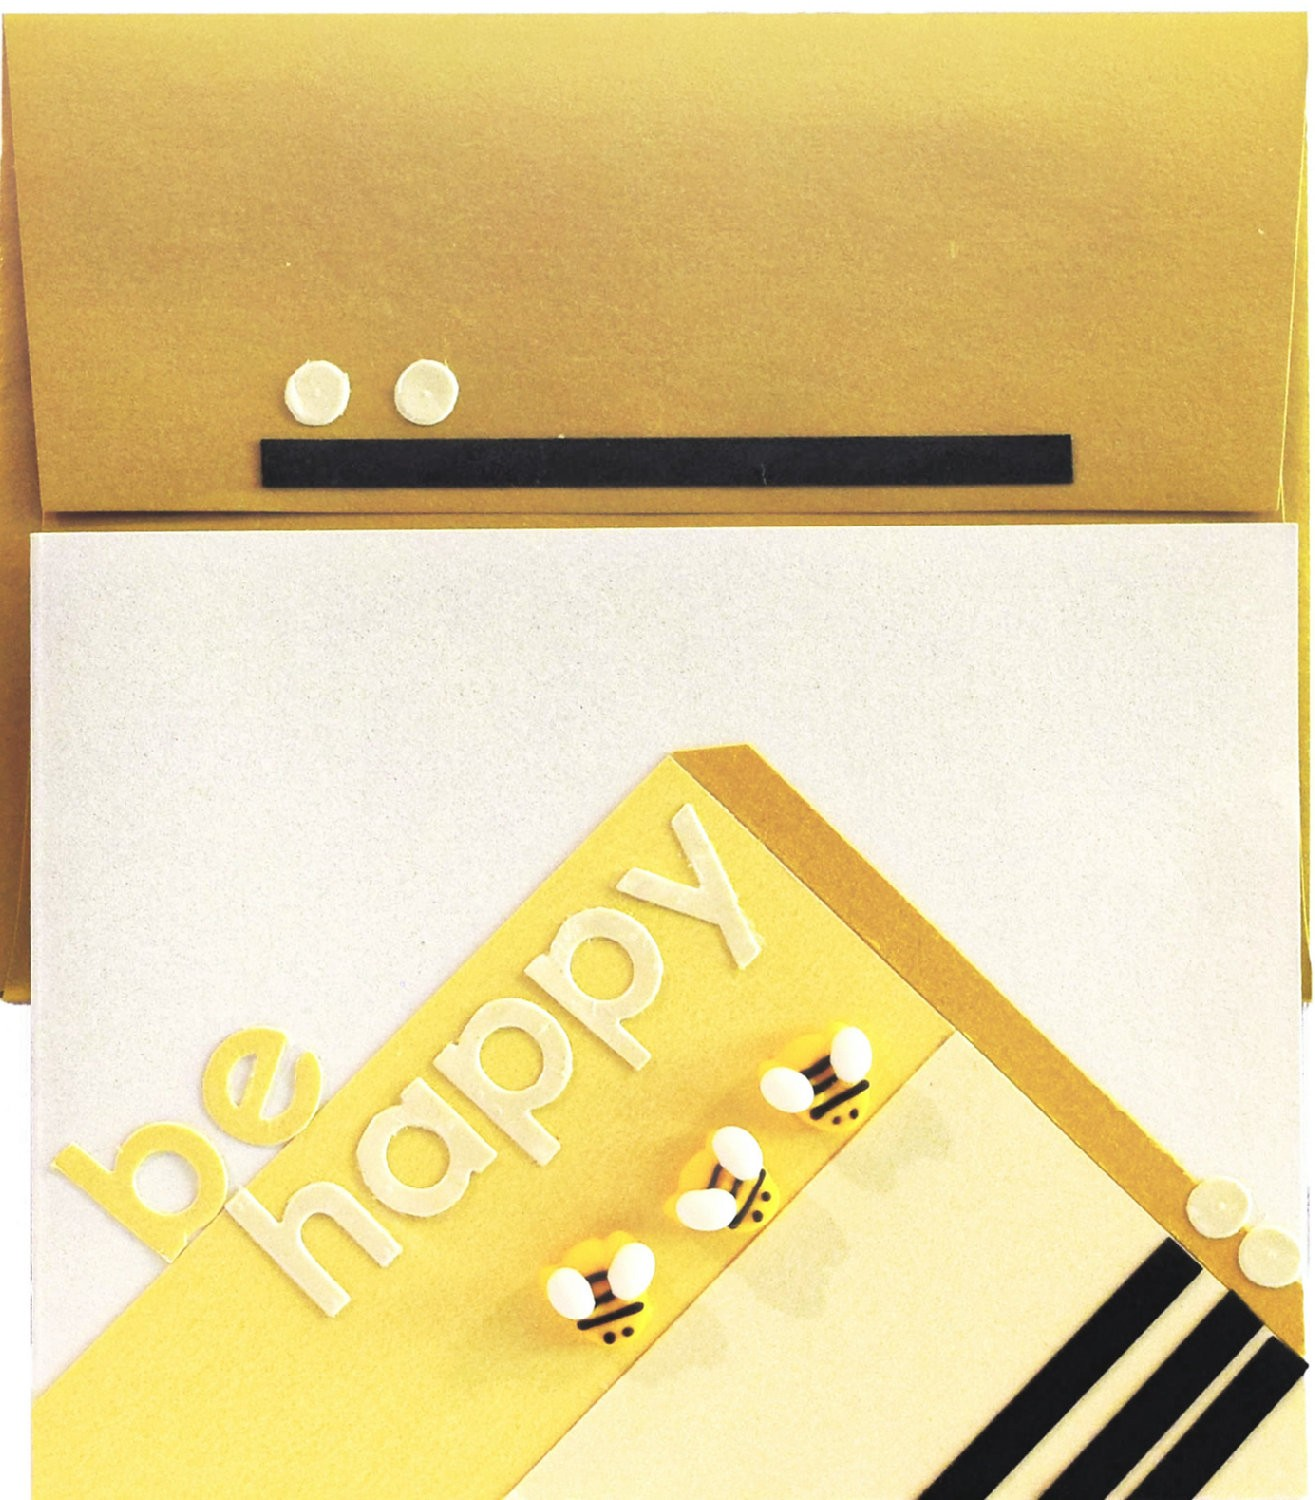 be happy envelope and card happy diy card and envelope is a great way to send smiles - Paper Papers Be Happy 3 web 2 - Happy DIY card and envelope is a great way to send smiles